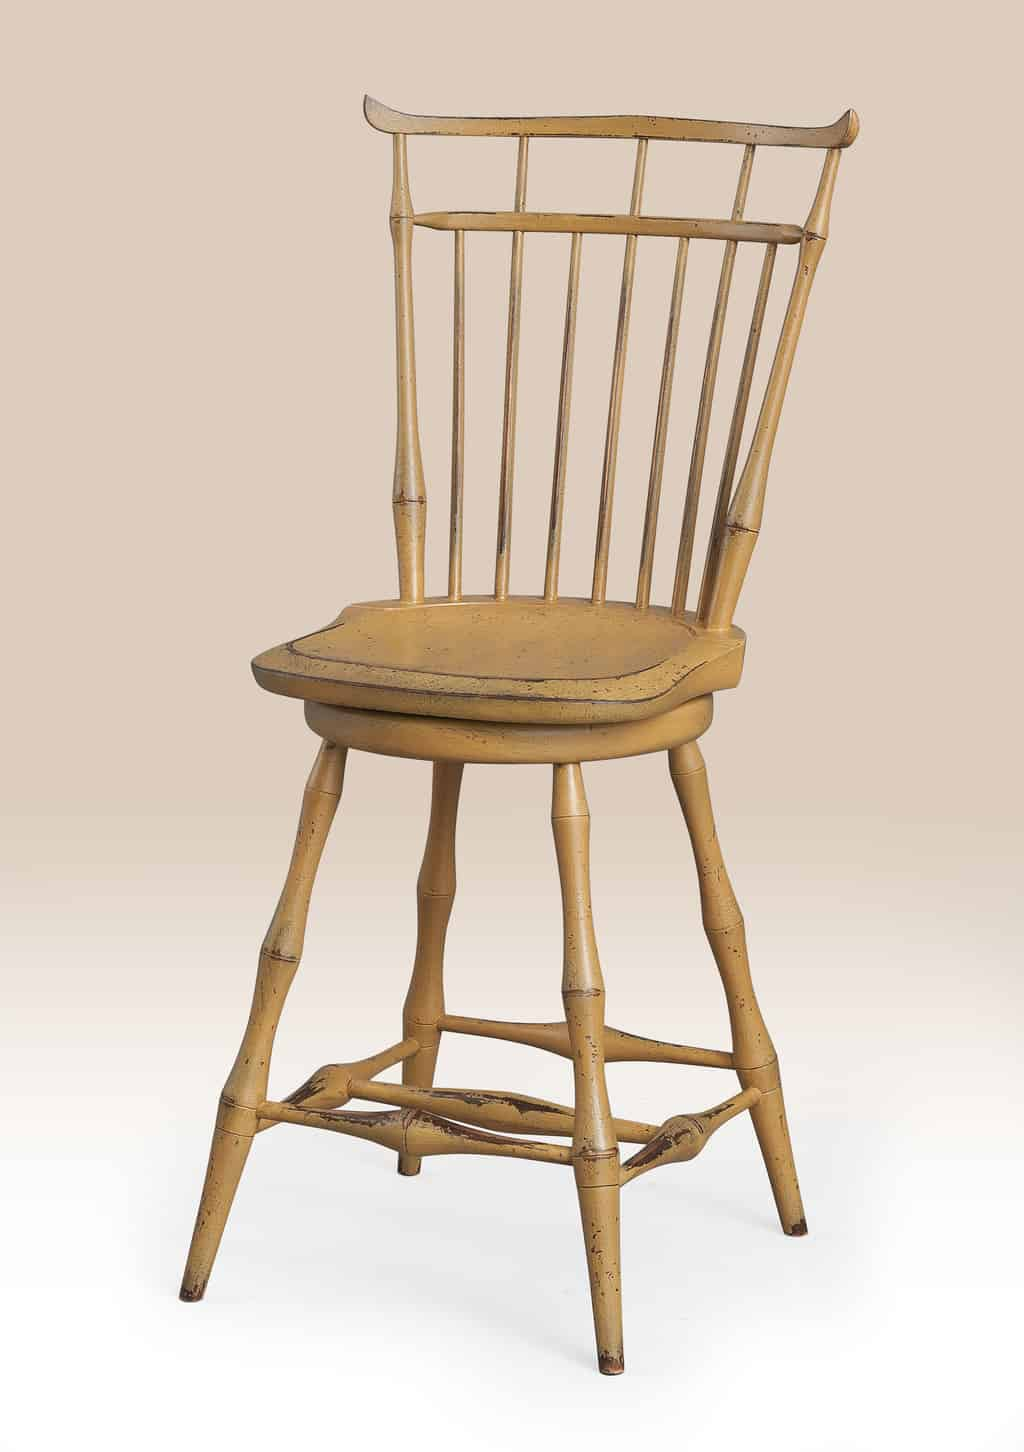 Historical Swivel Birdcage Windsor Stool Image